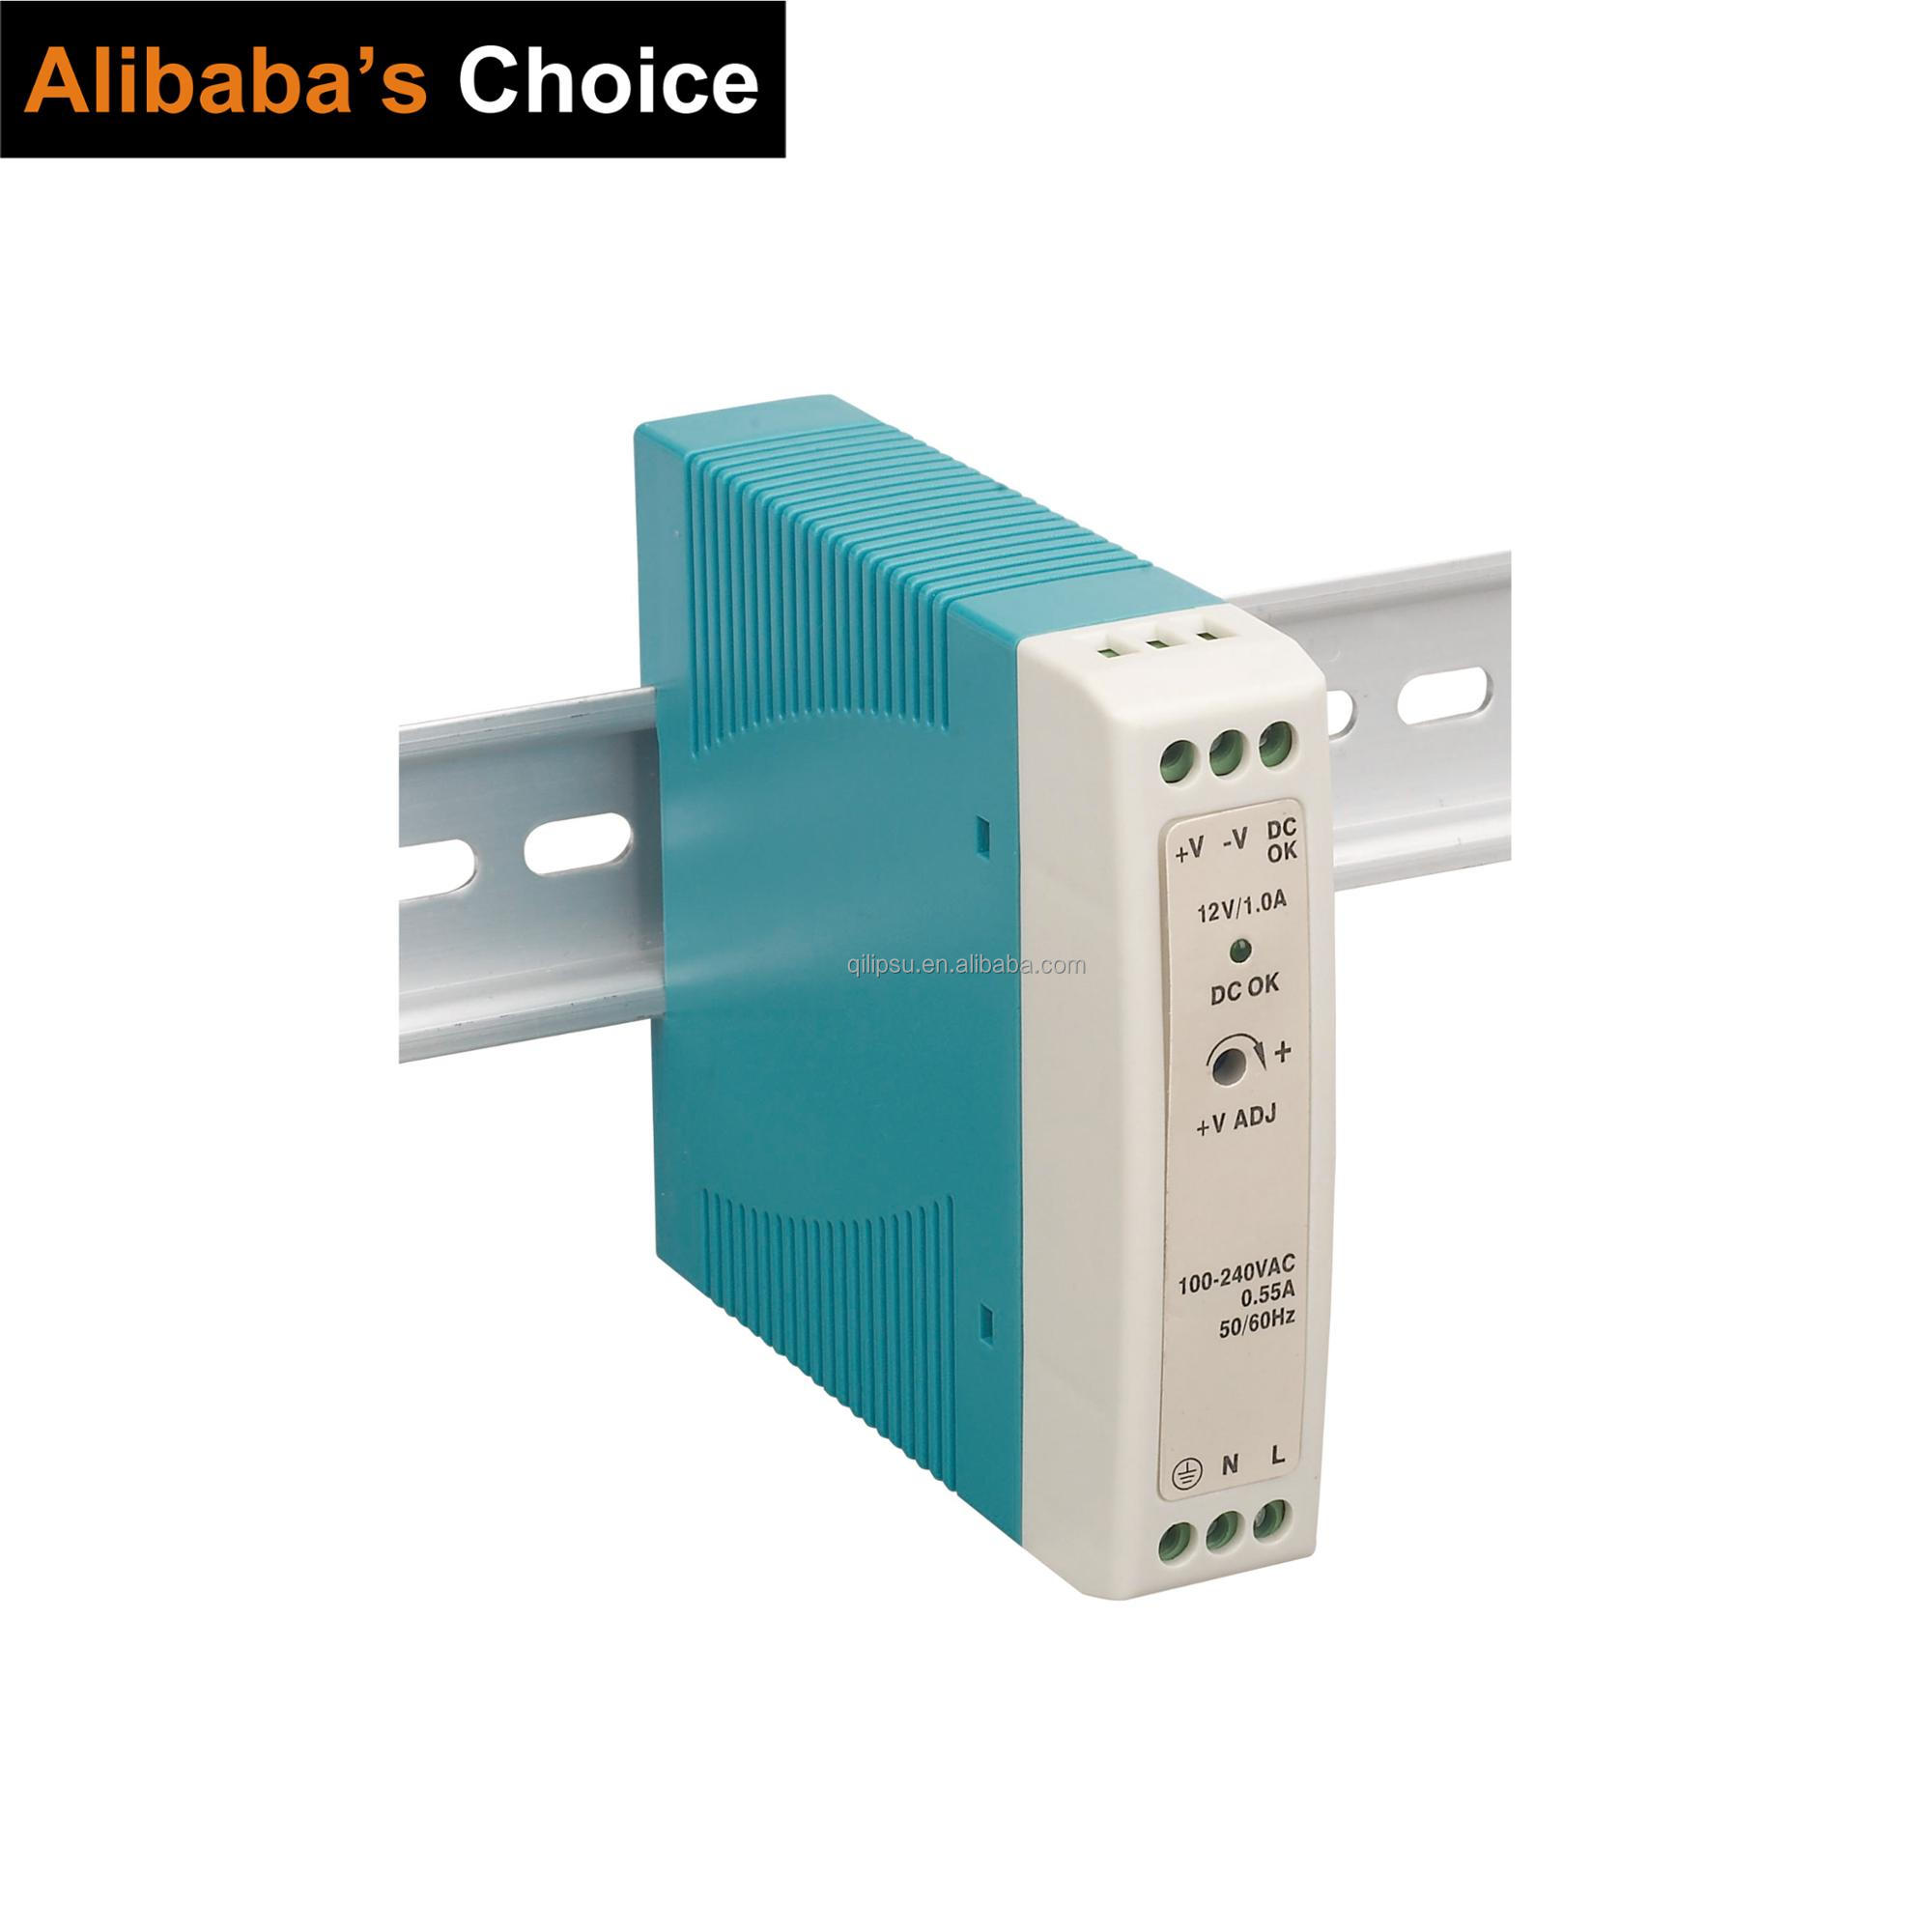 12V 0.84A 10W LIFETIME WARRANTY MINI DIN RIAL power <strong>supply</strong> CE ROHS